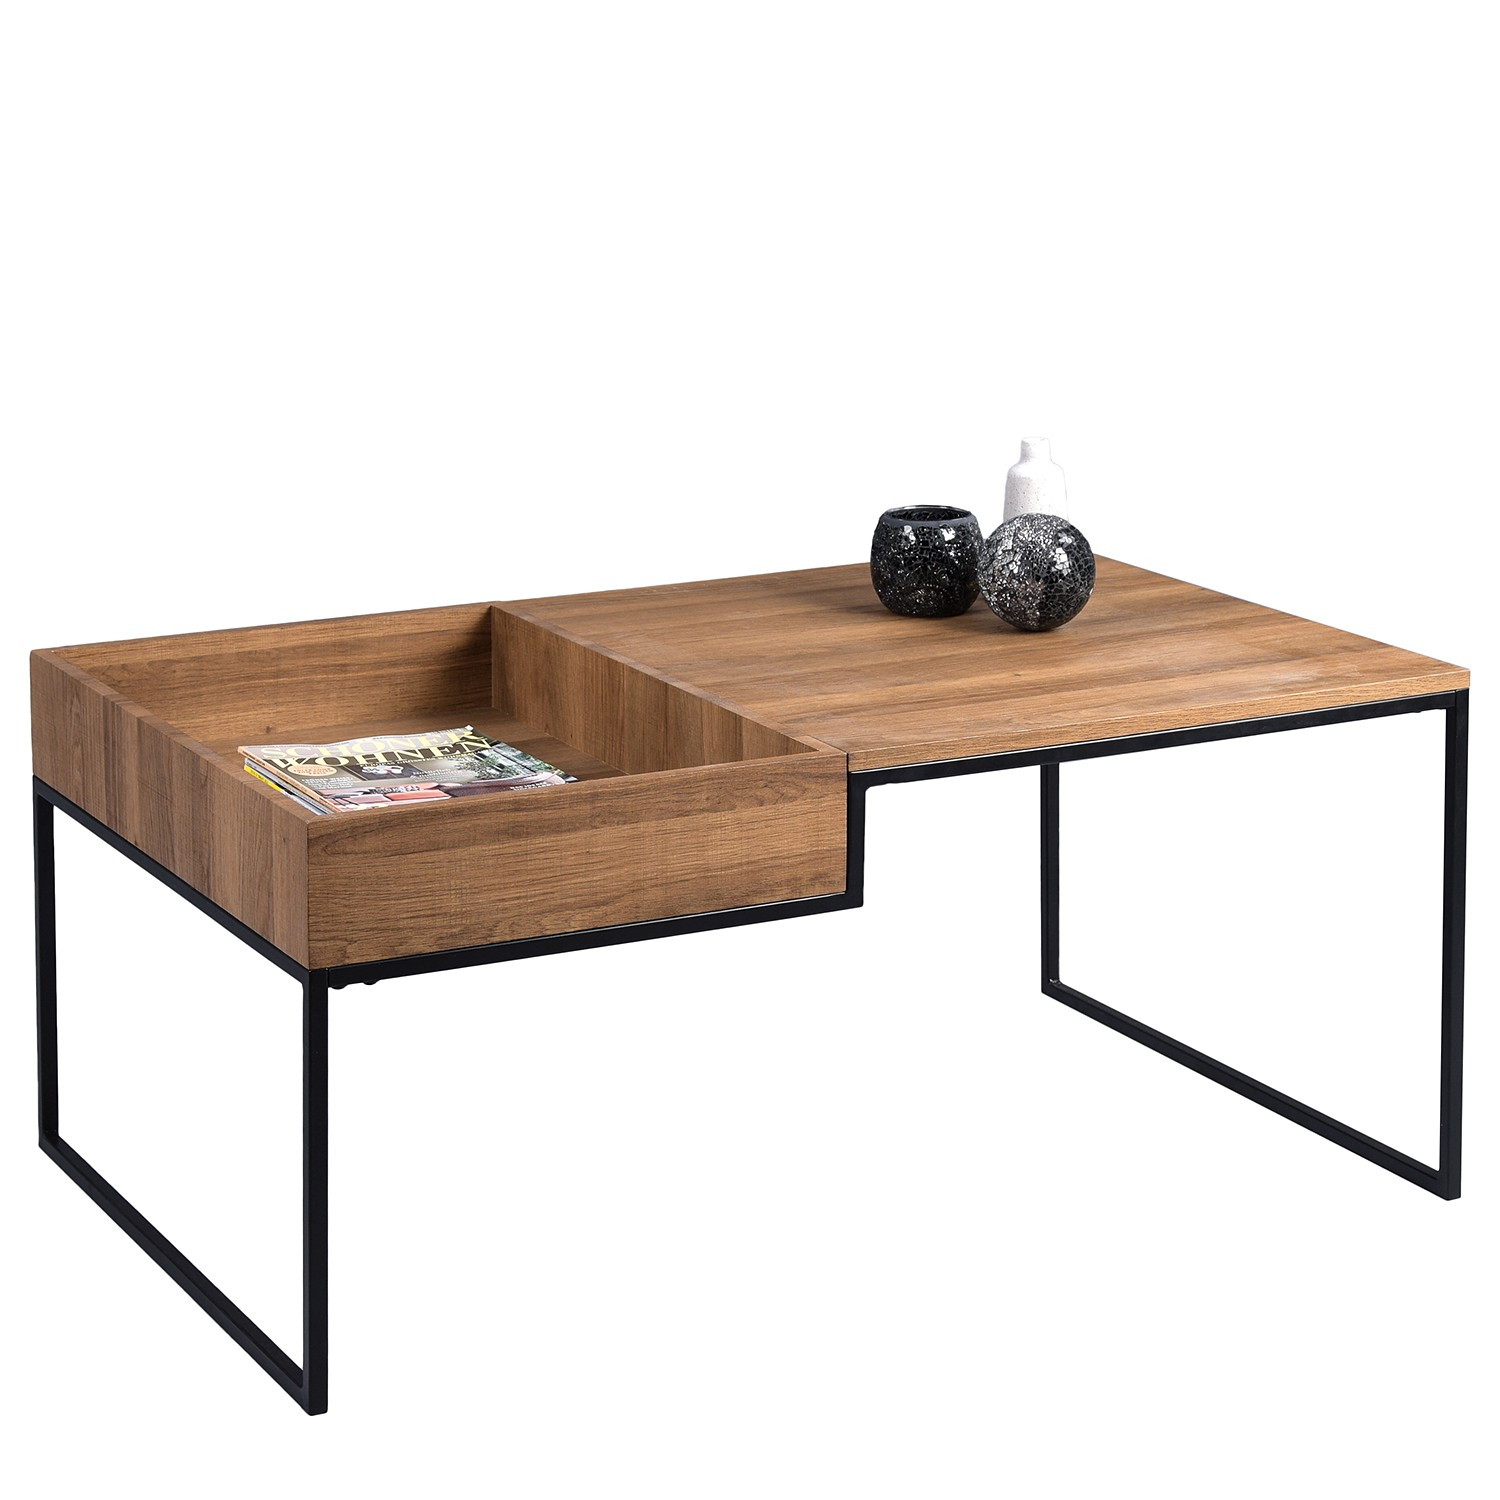 Table basse Govan